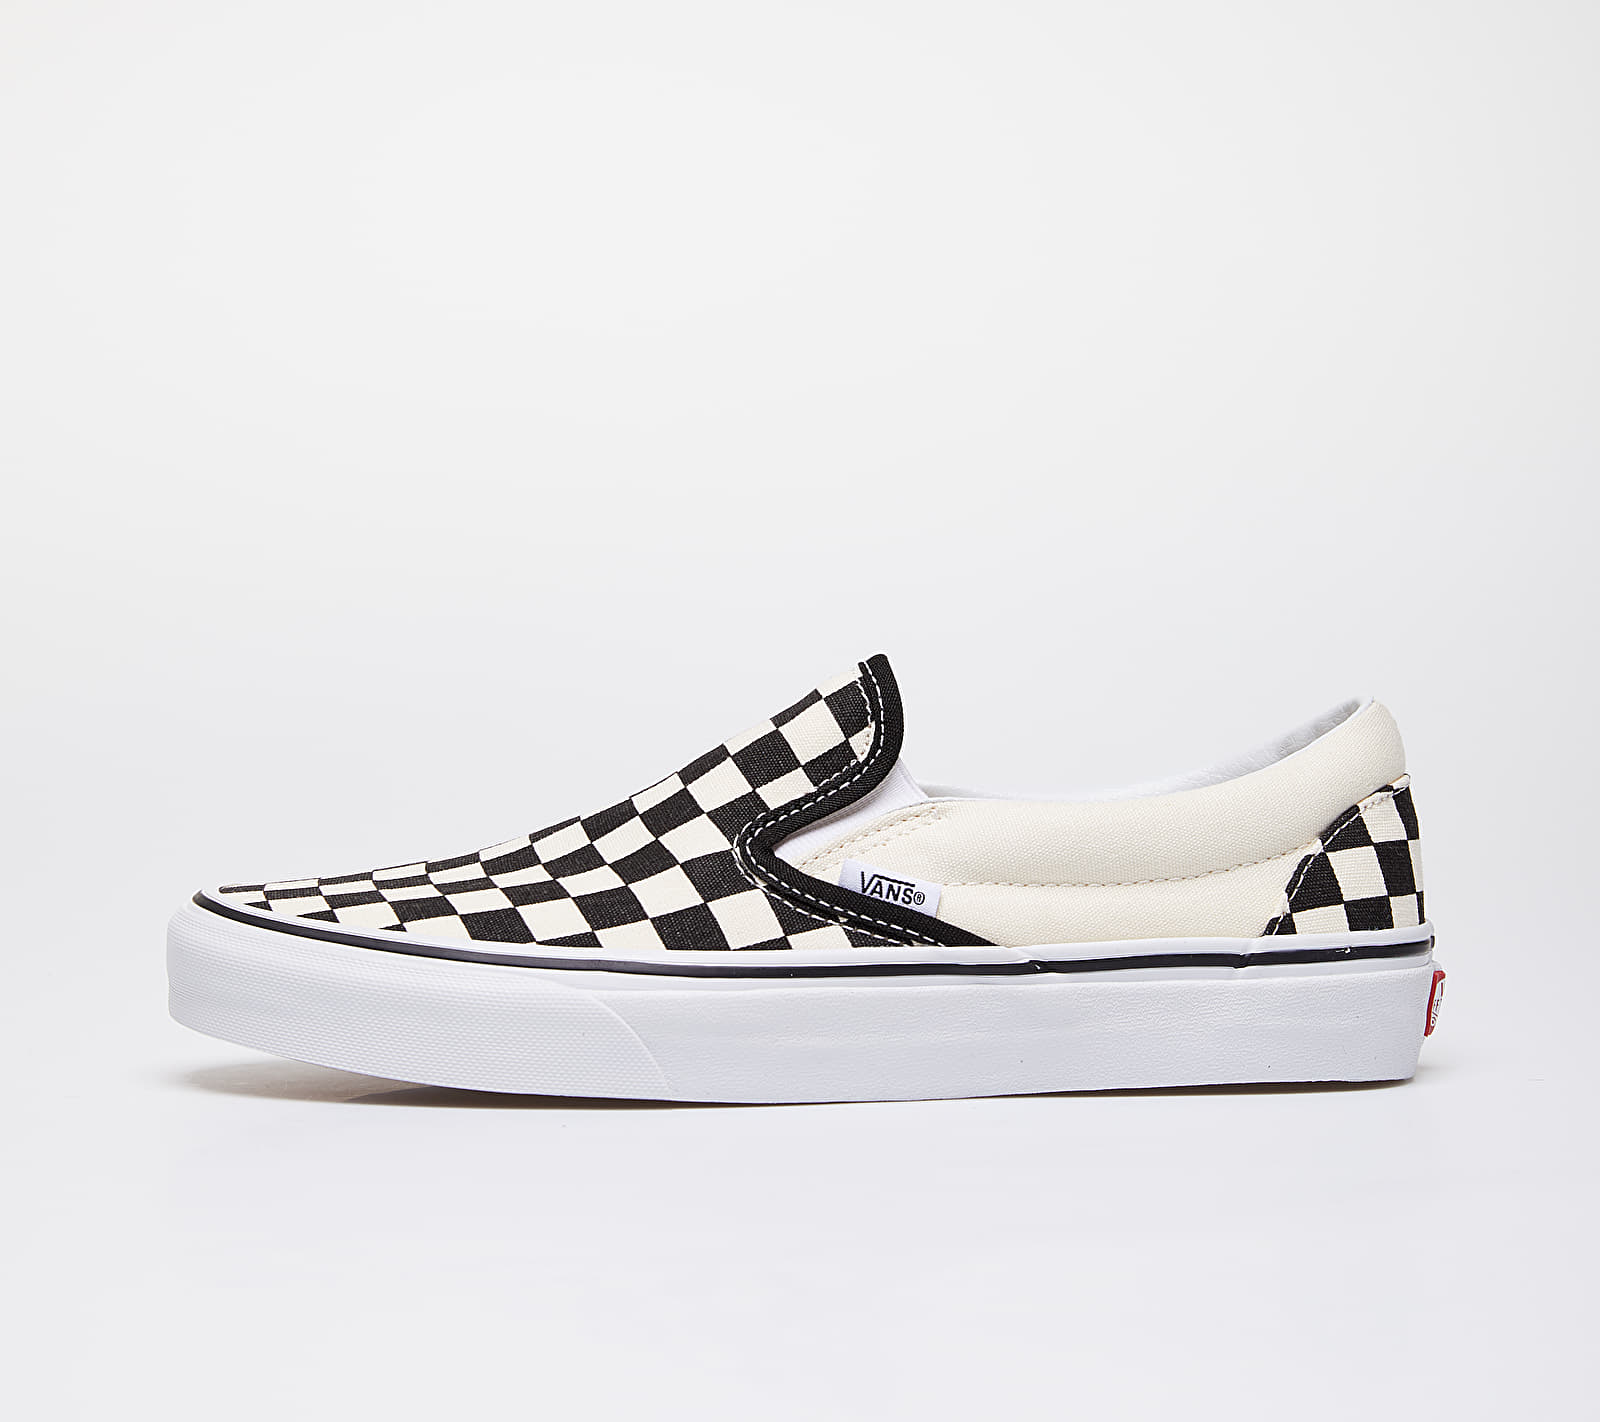 Vans Classic Slip-On Black & White Checkerboard/ White VN000EYEBWW1